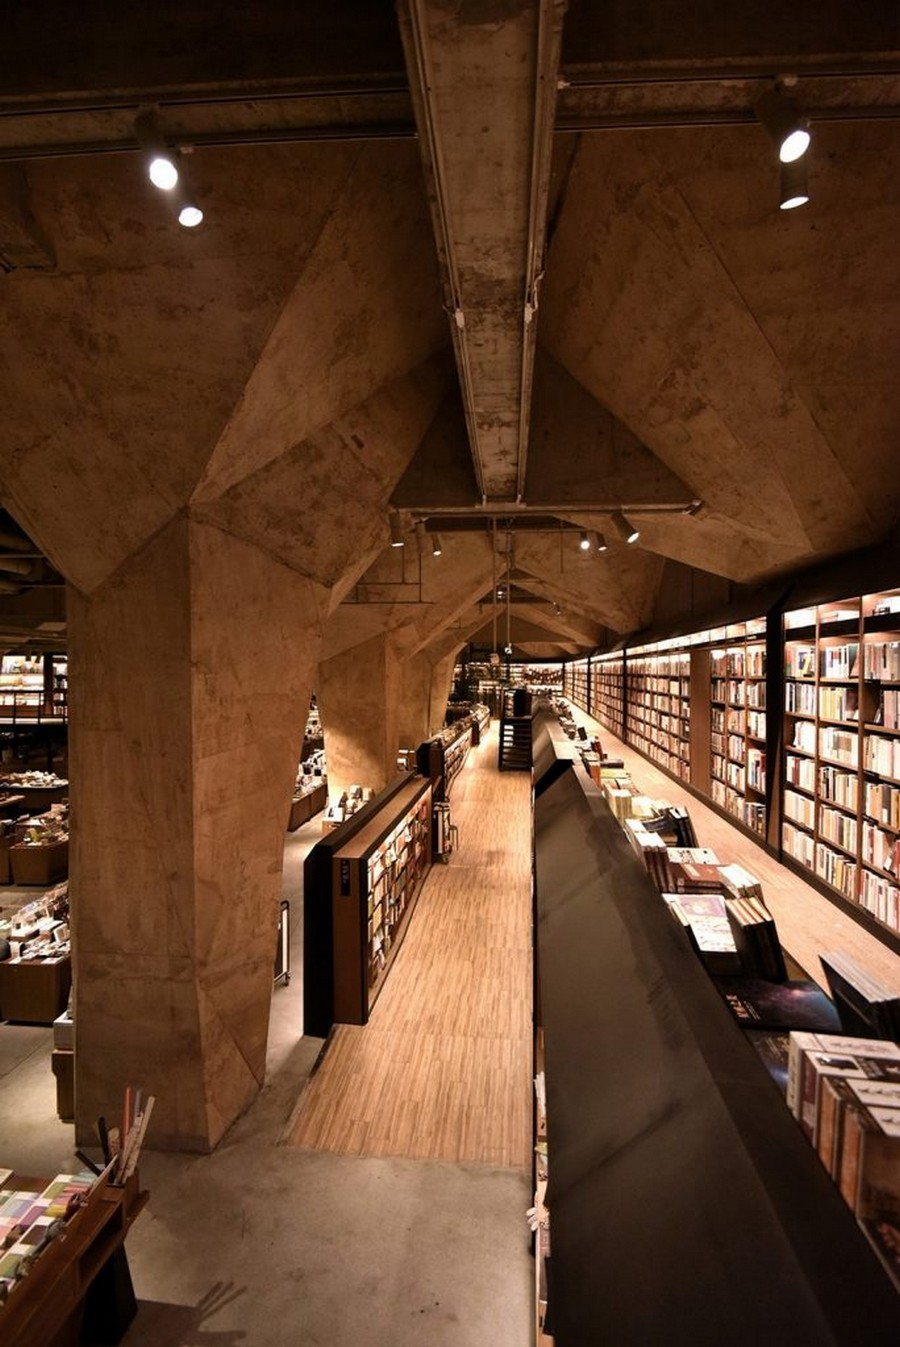 Be Inspired By Chu Chih-Kang's Most Famous Bookstore Design Project chu chih-kang Be Inspired By Chu Chih-Kang's Most Famous Bookstore Design Project Be Inspired By Chu Chih Kangs Most Famous Bookstore Design Project 2